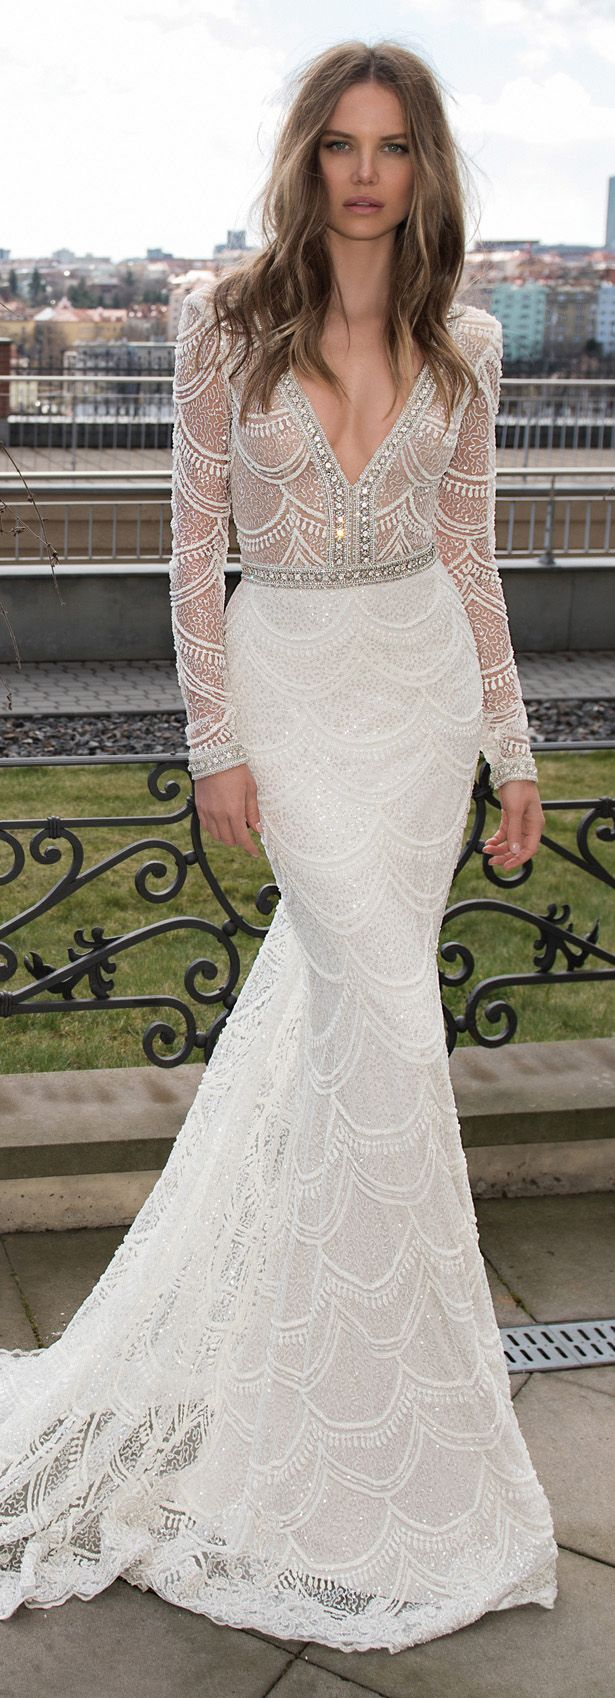 Wedding Dresses by Berta Bridal Fall 2015 - Belle The Magazine